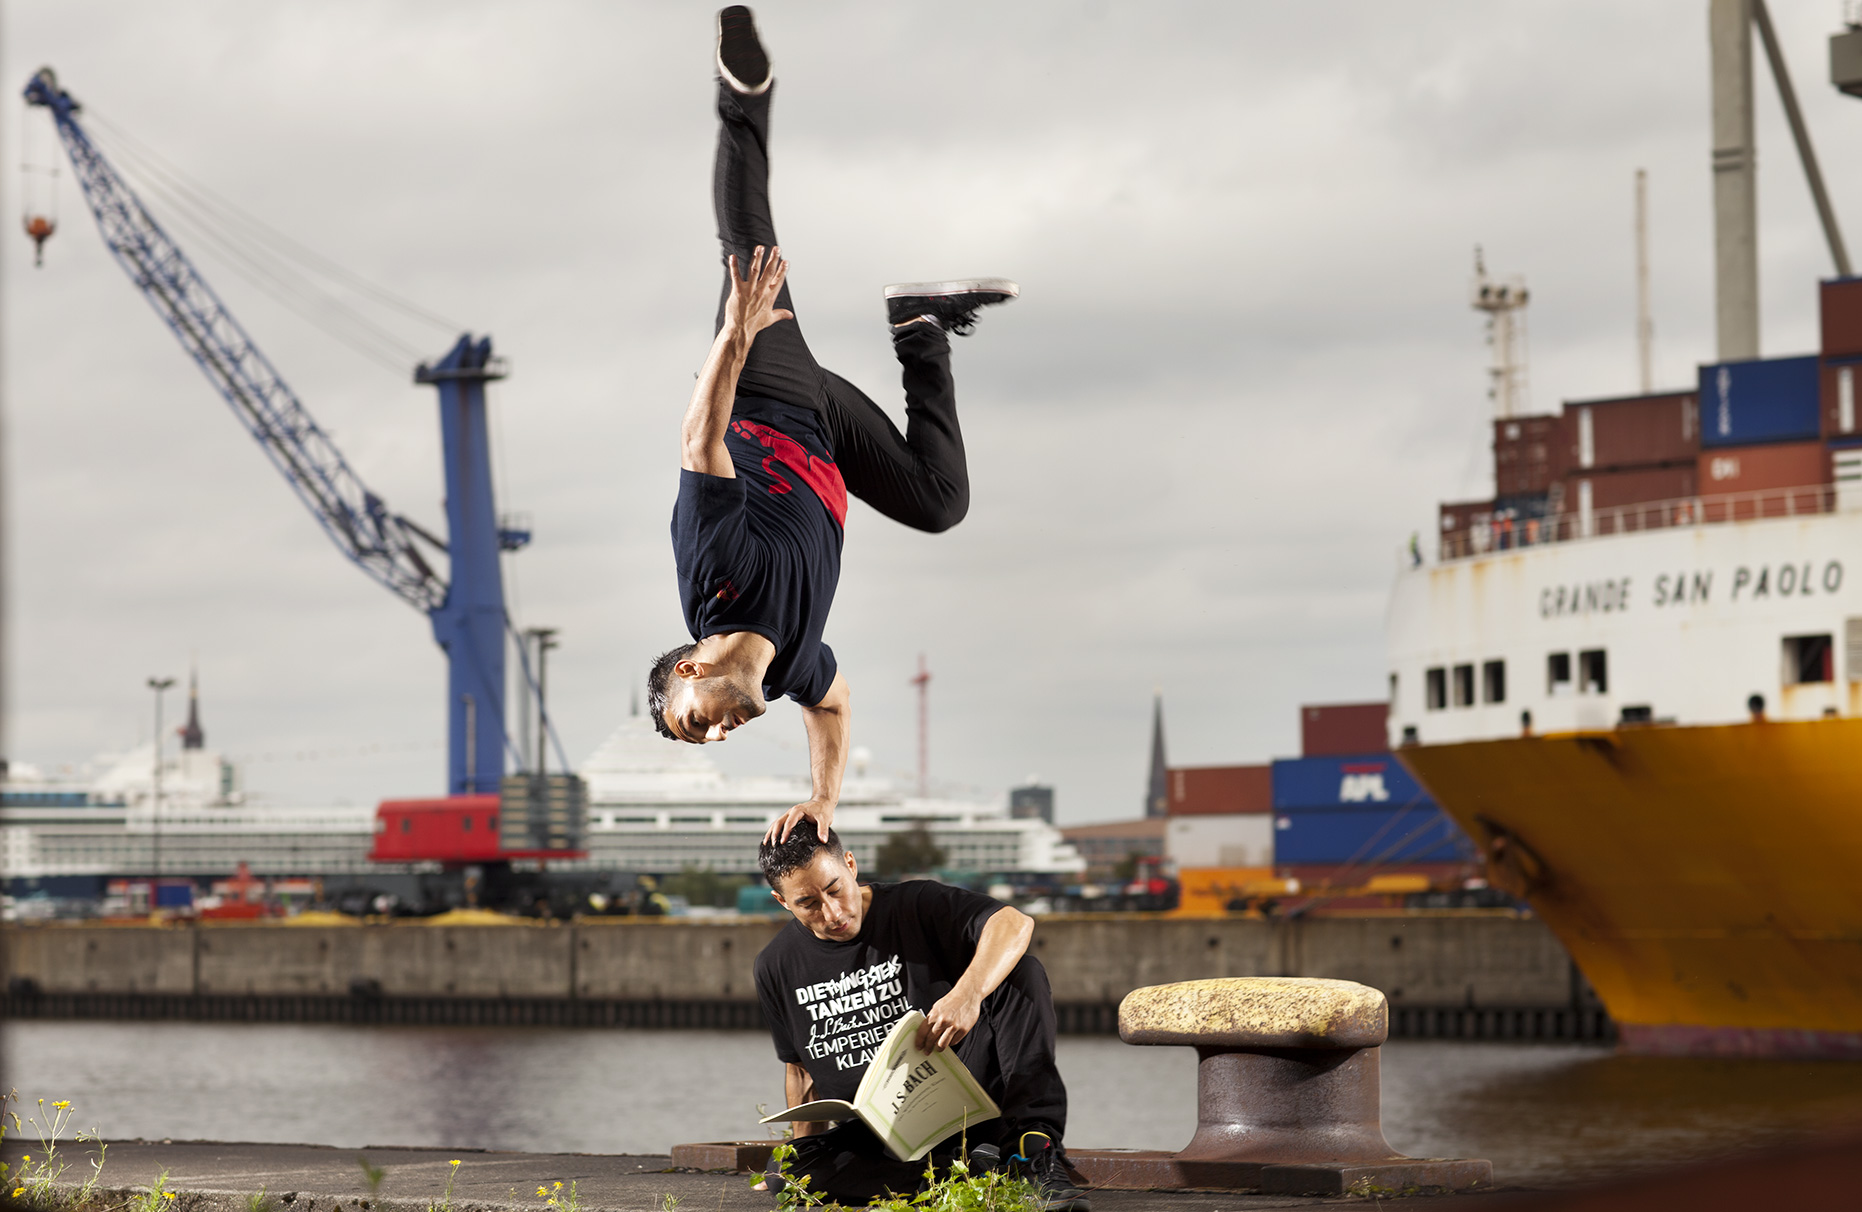 © Dirk Mathesius, Benny & Gengis from the Red Bull Flying Bach Crew, Hamburg, 2011